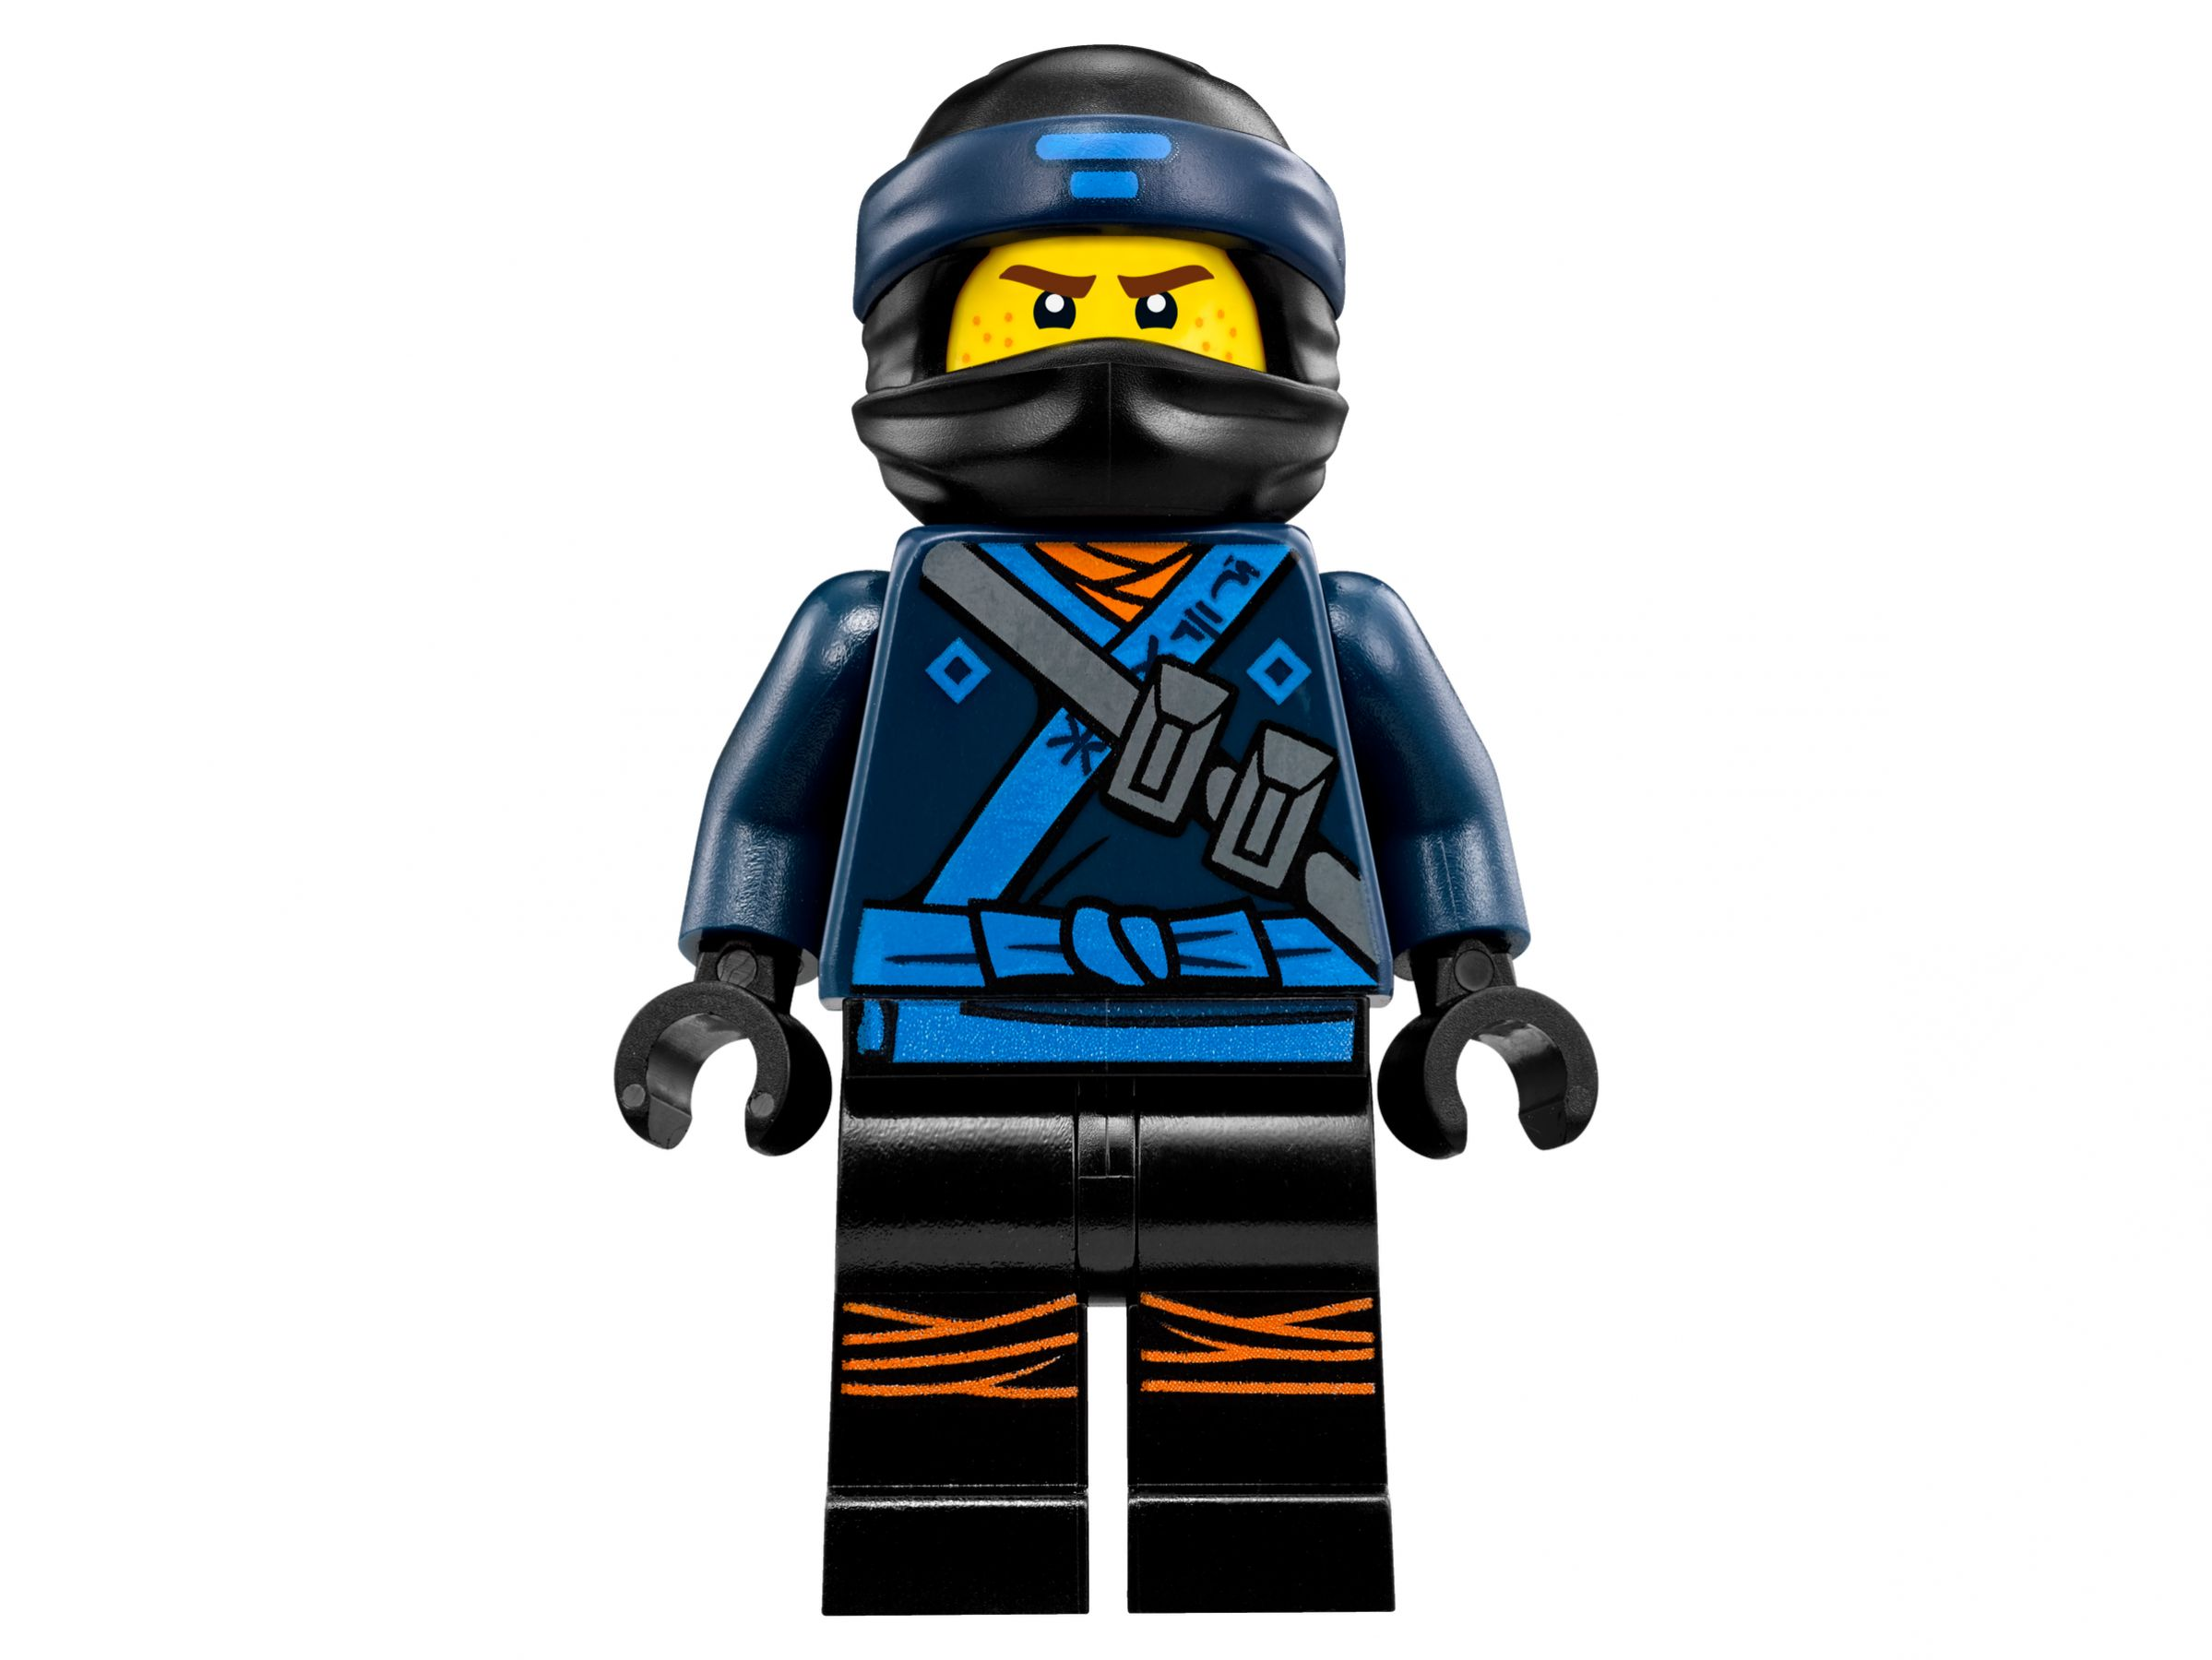 LEGO The LEGO Ninjago Movie 70610 Turbo Qualle LEGO_70610_alt7.jpg